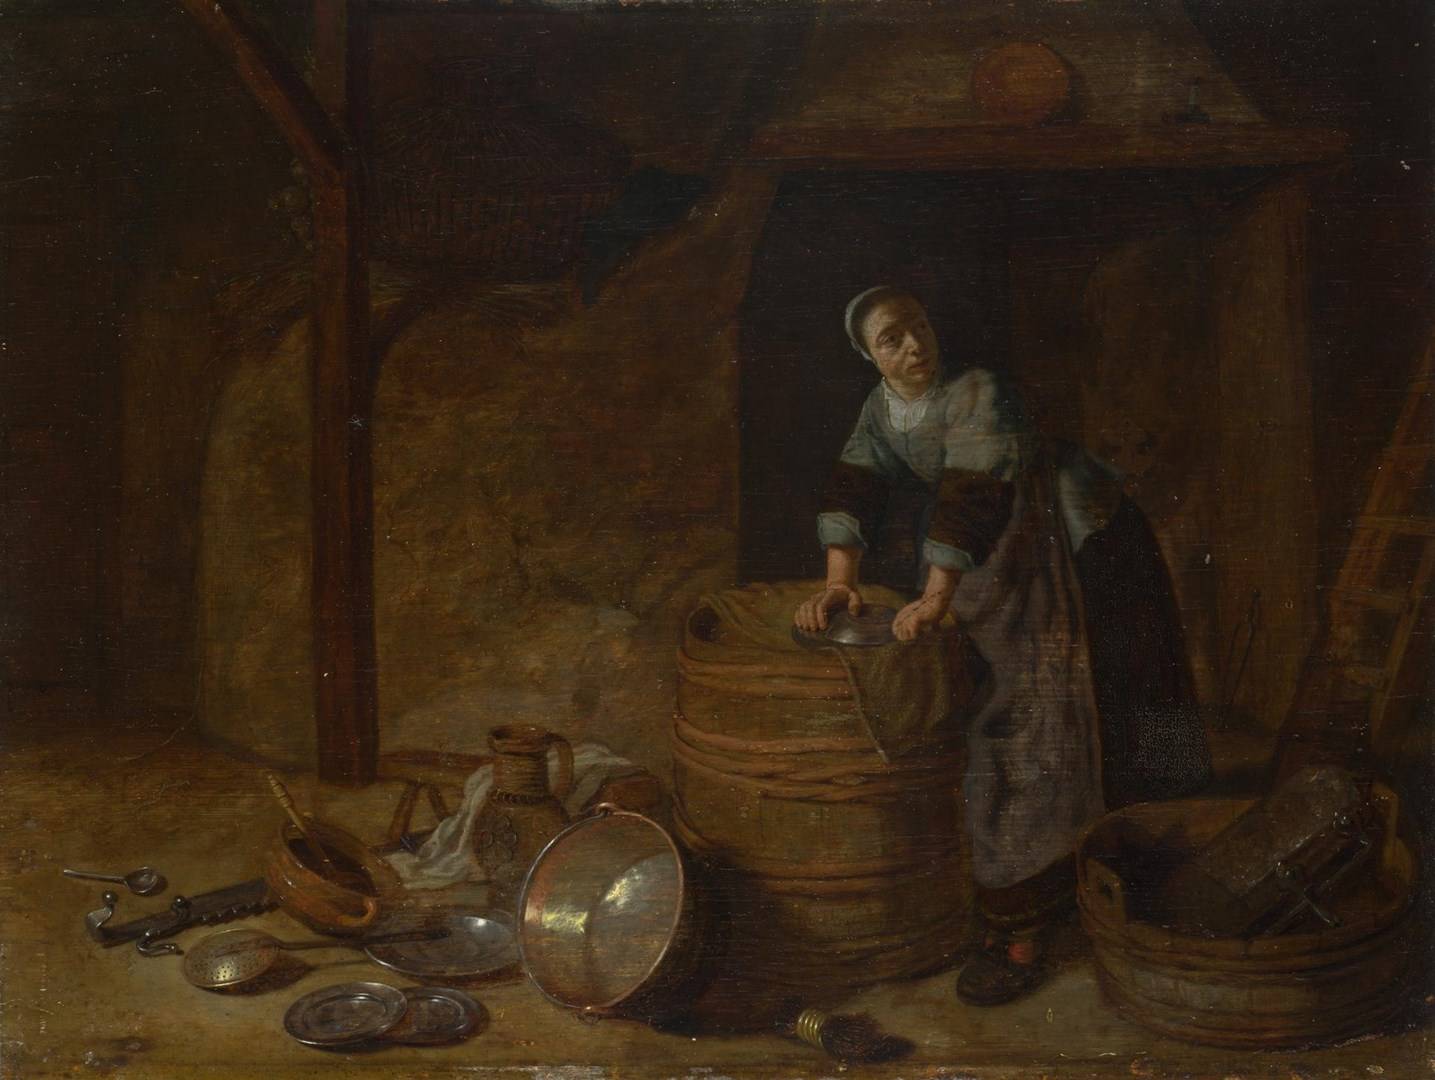 A Woman scouring a Pot by Possibly by Pieter van den Bosch